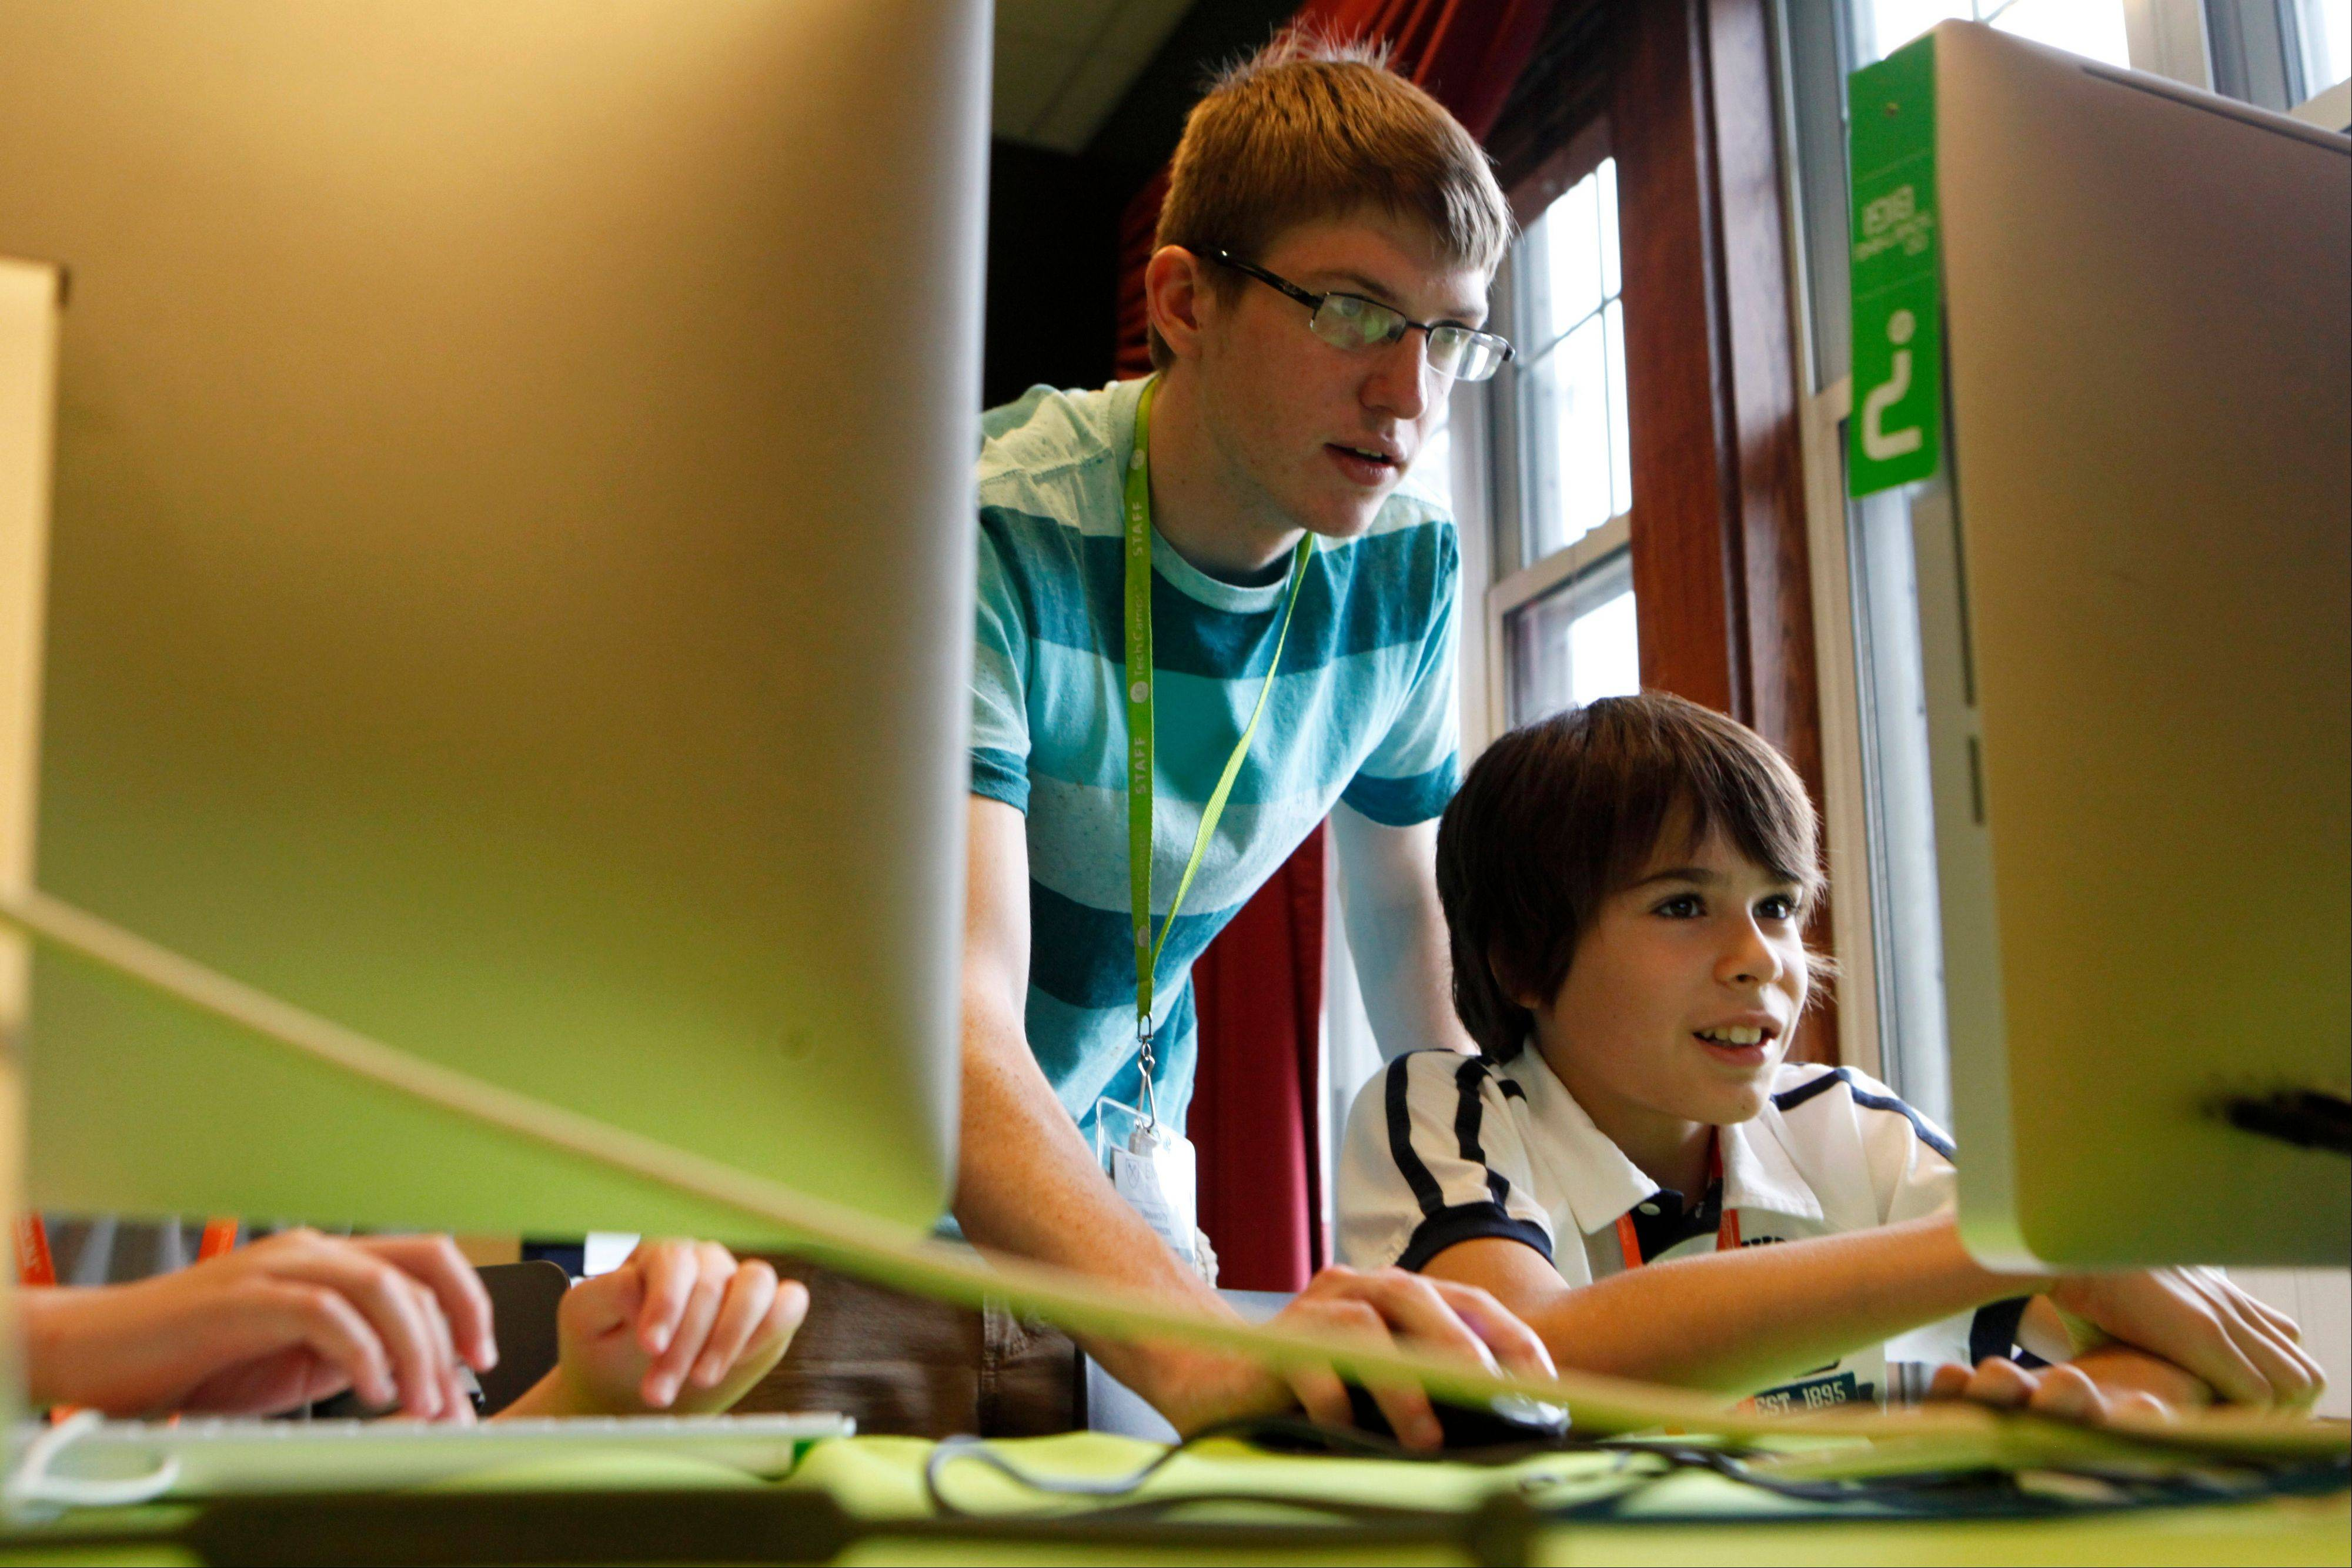 Instructor Thaddeus Owings, left, helps camper Nicholas Sanchez work on creating a video game while at an iD Tech Camp at the Emory University campus in Atlanta. So-called coding camps for kids are becoming more popular amid a growing effort to expand access to computer programming and inspire more youths to seek computer science degrees and later careers in technology.